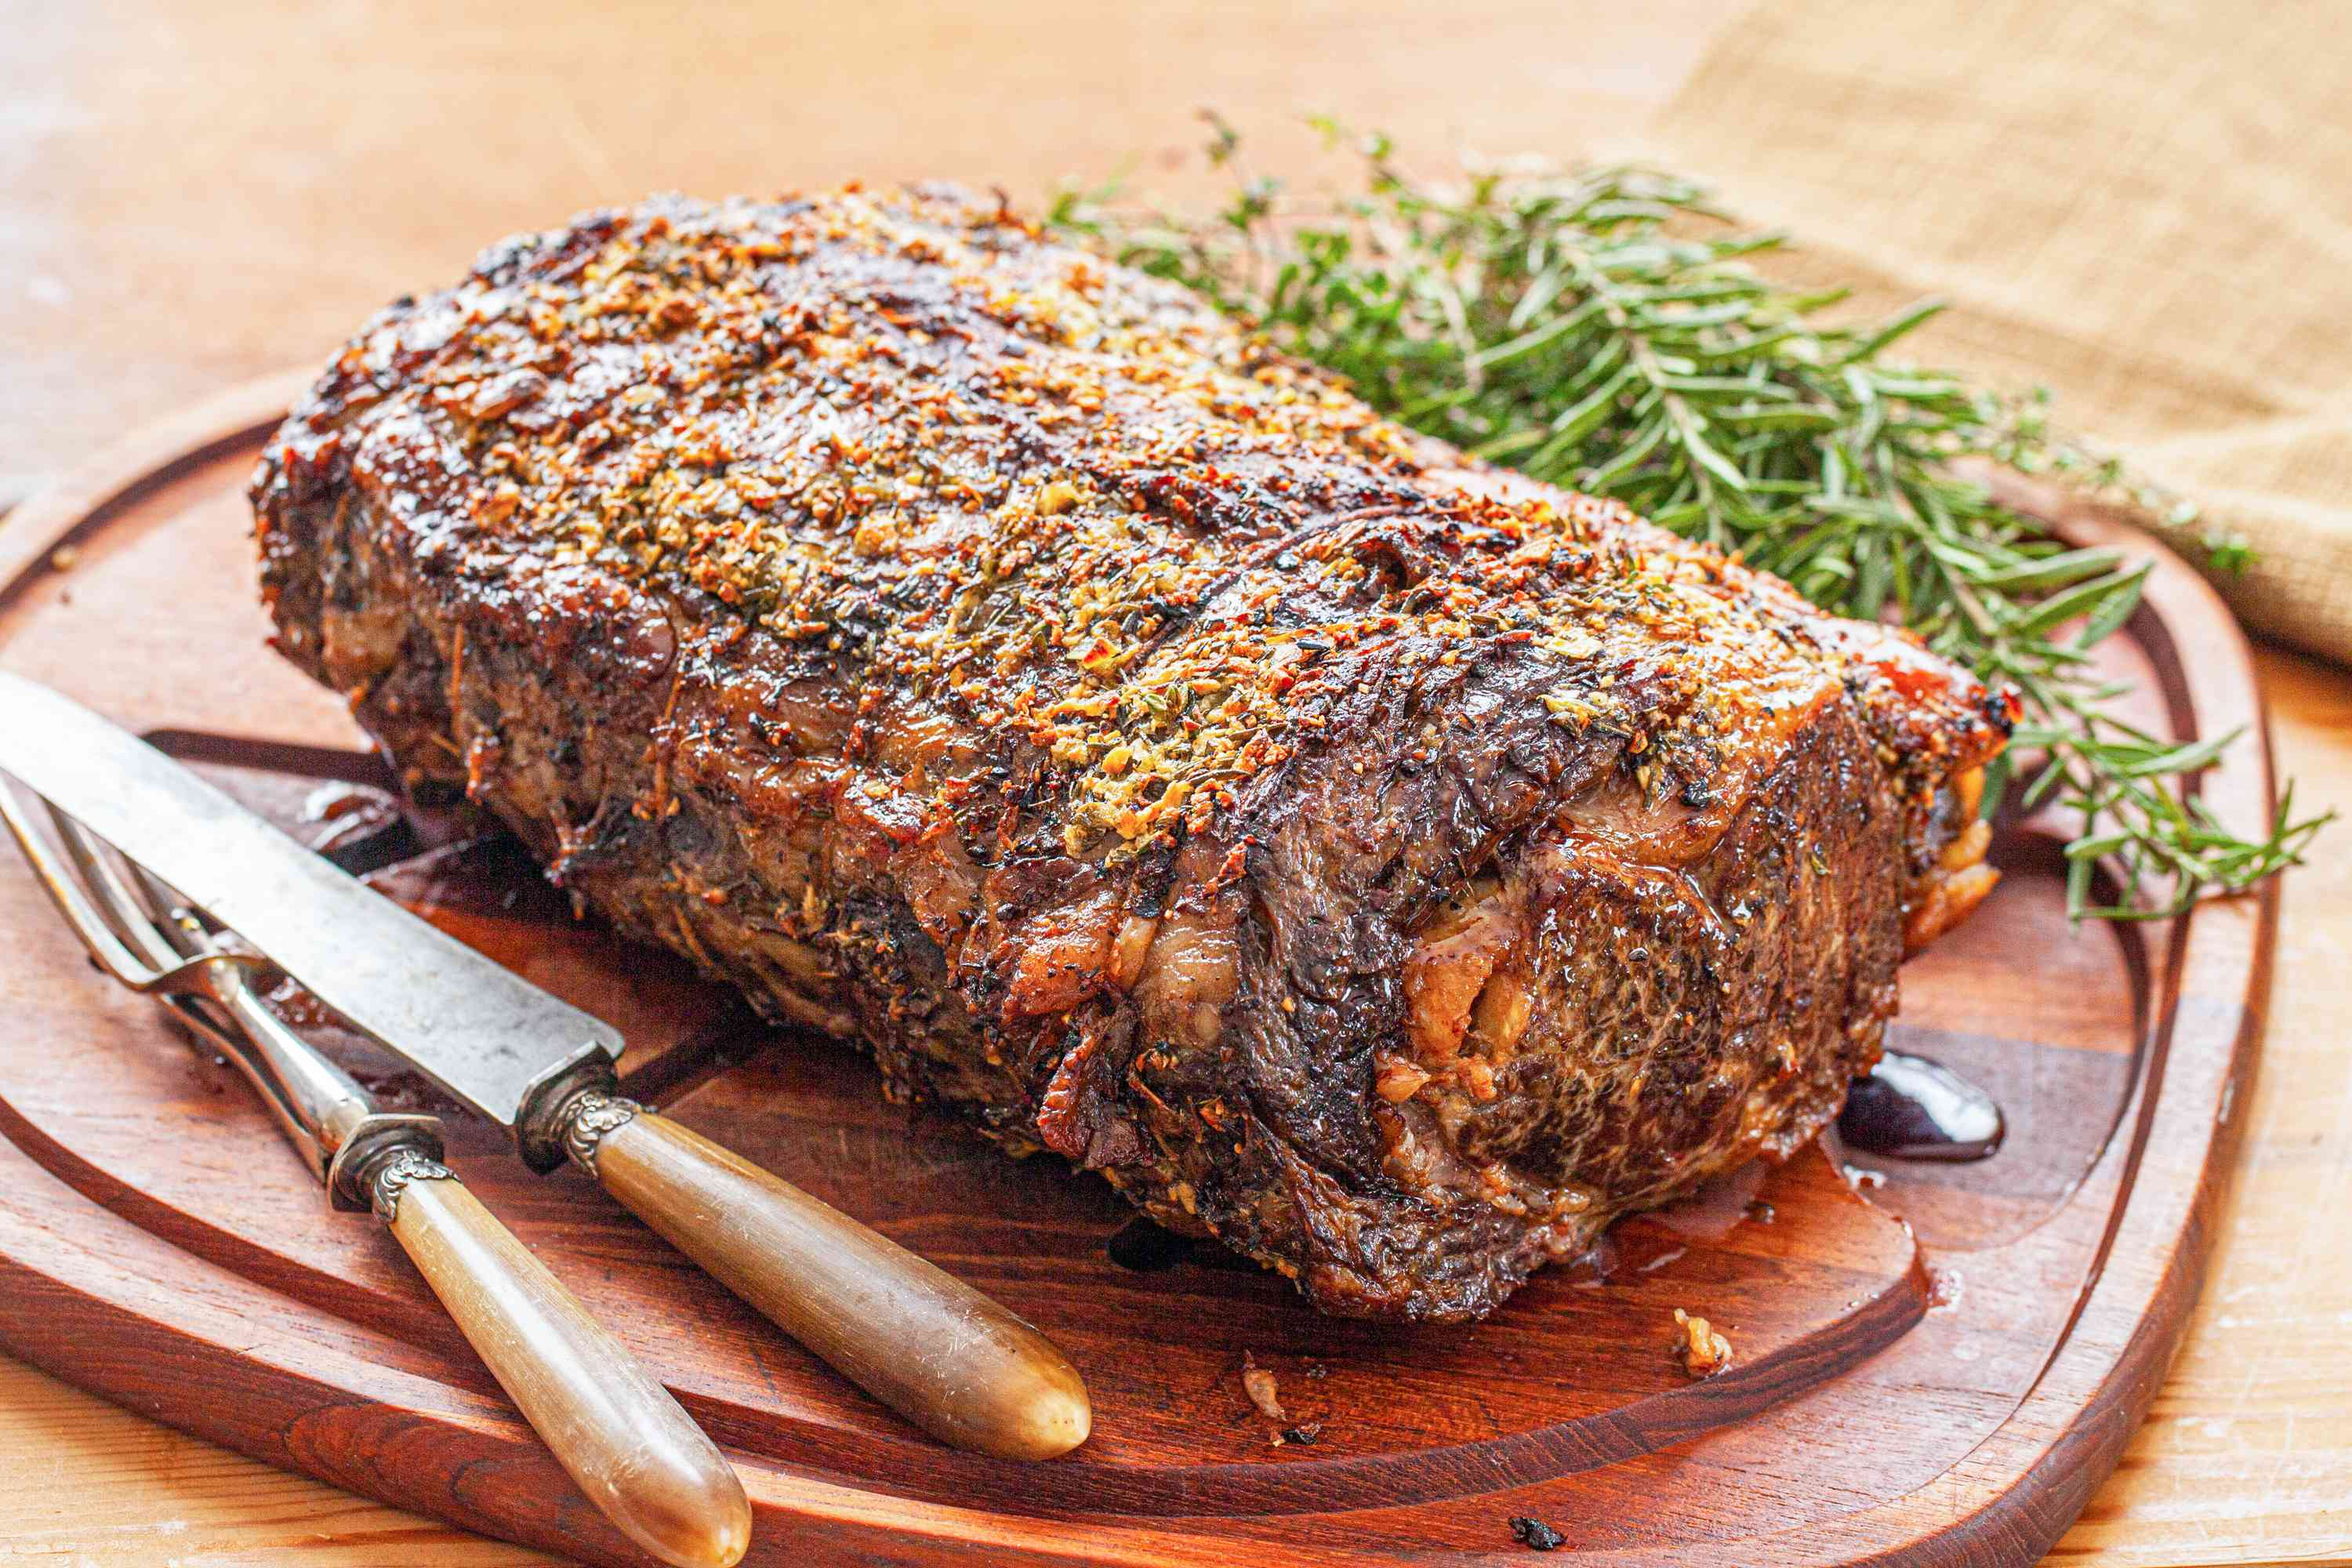 Rosemary and Thyme Prime Rib ready to be served.